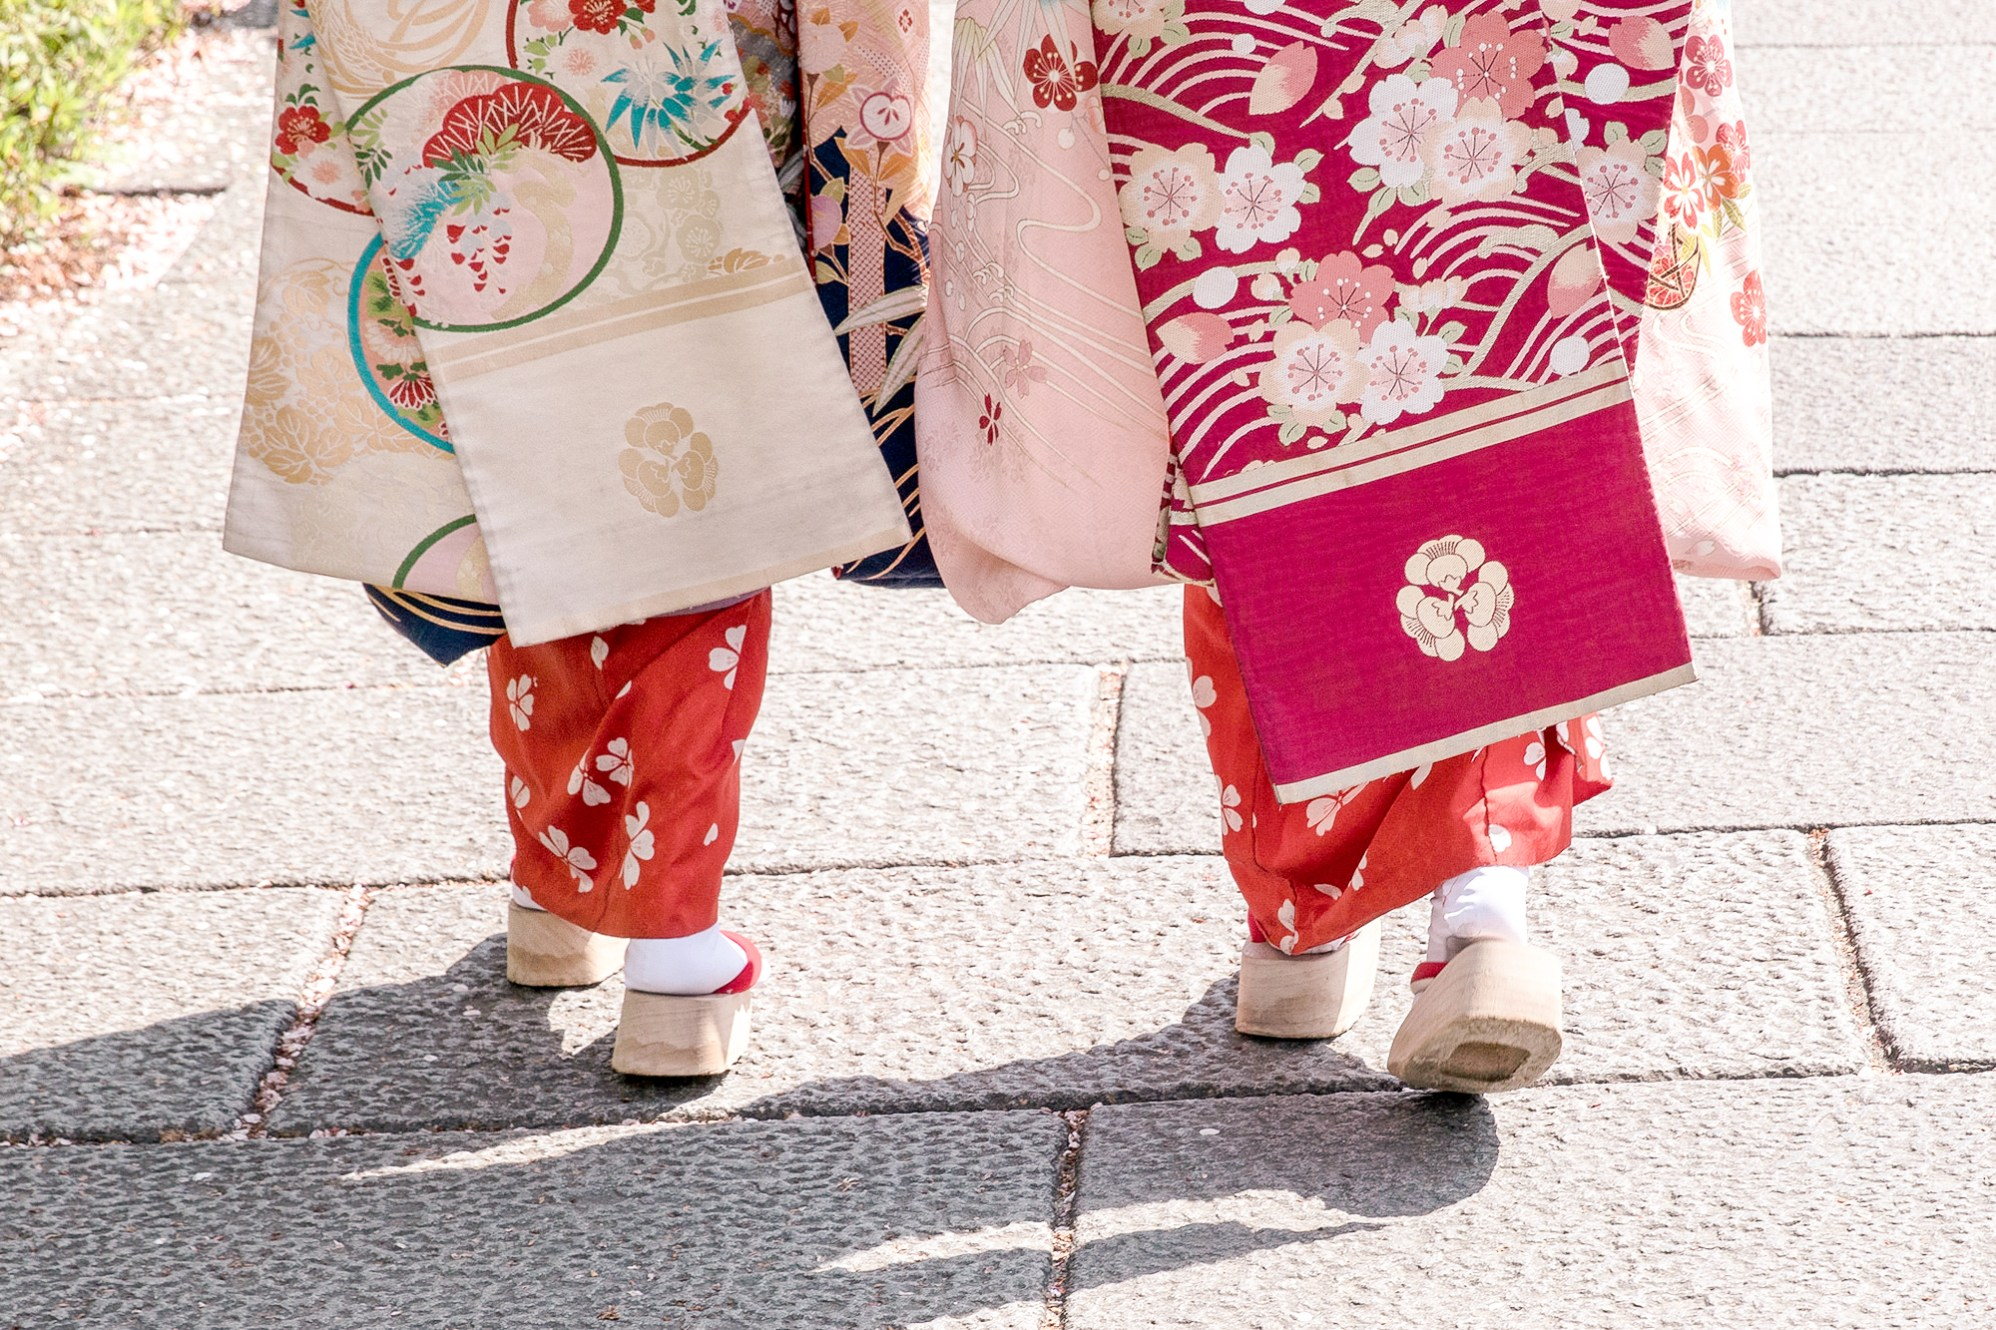 Ladies in traditional Kimono in Gion, Kyoto